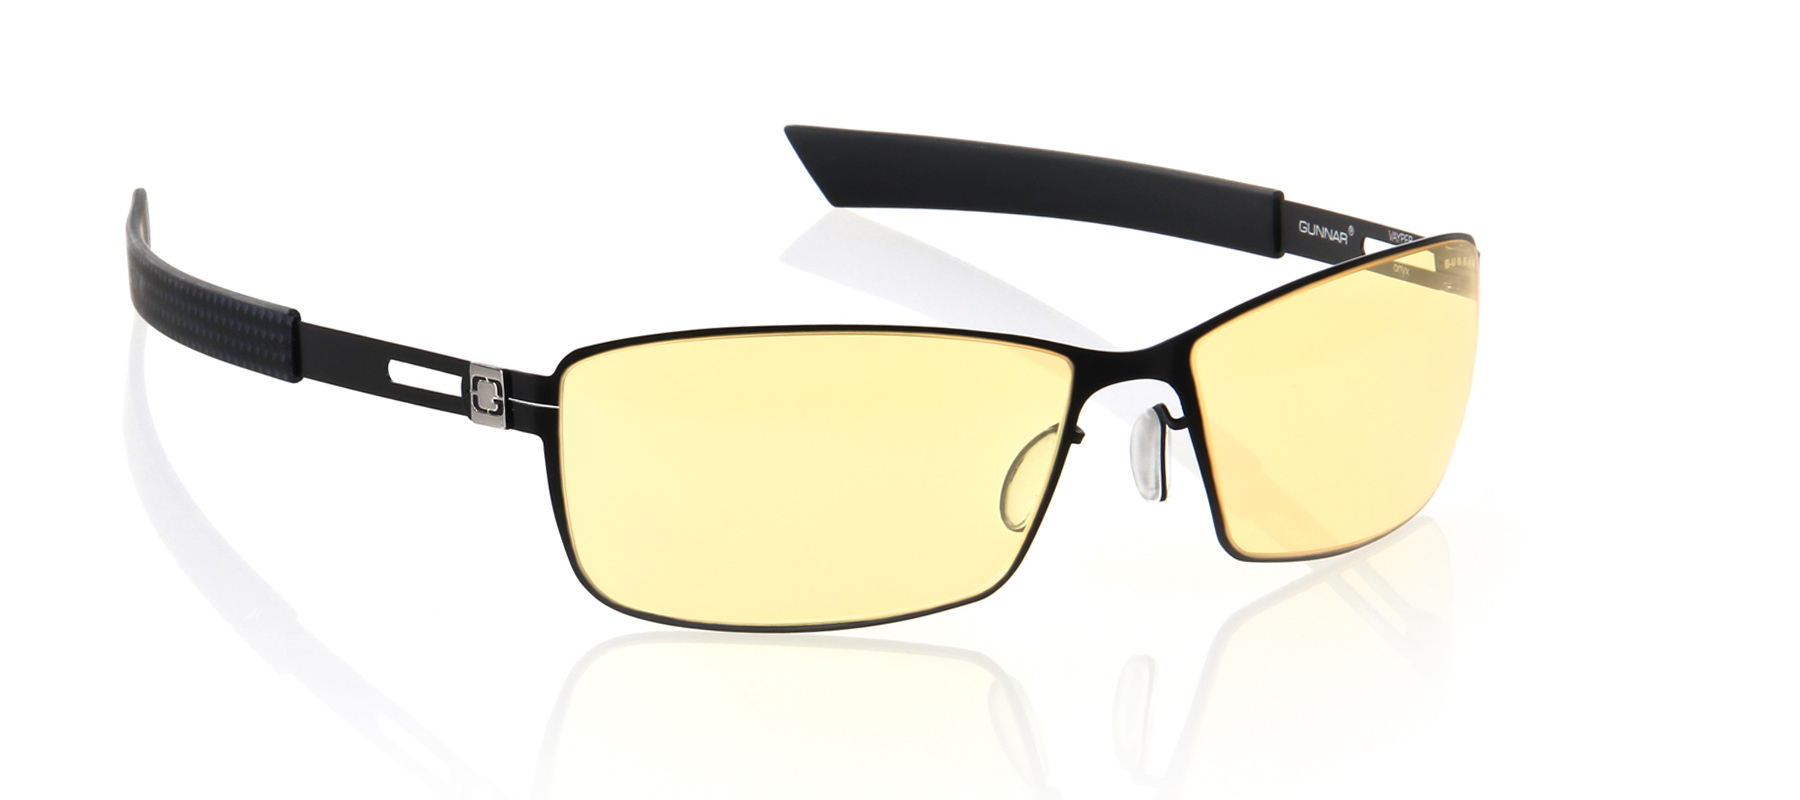 Очки для компьютера Gunnar Real Brand Technics 3490.000